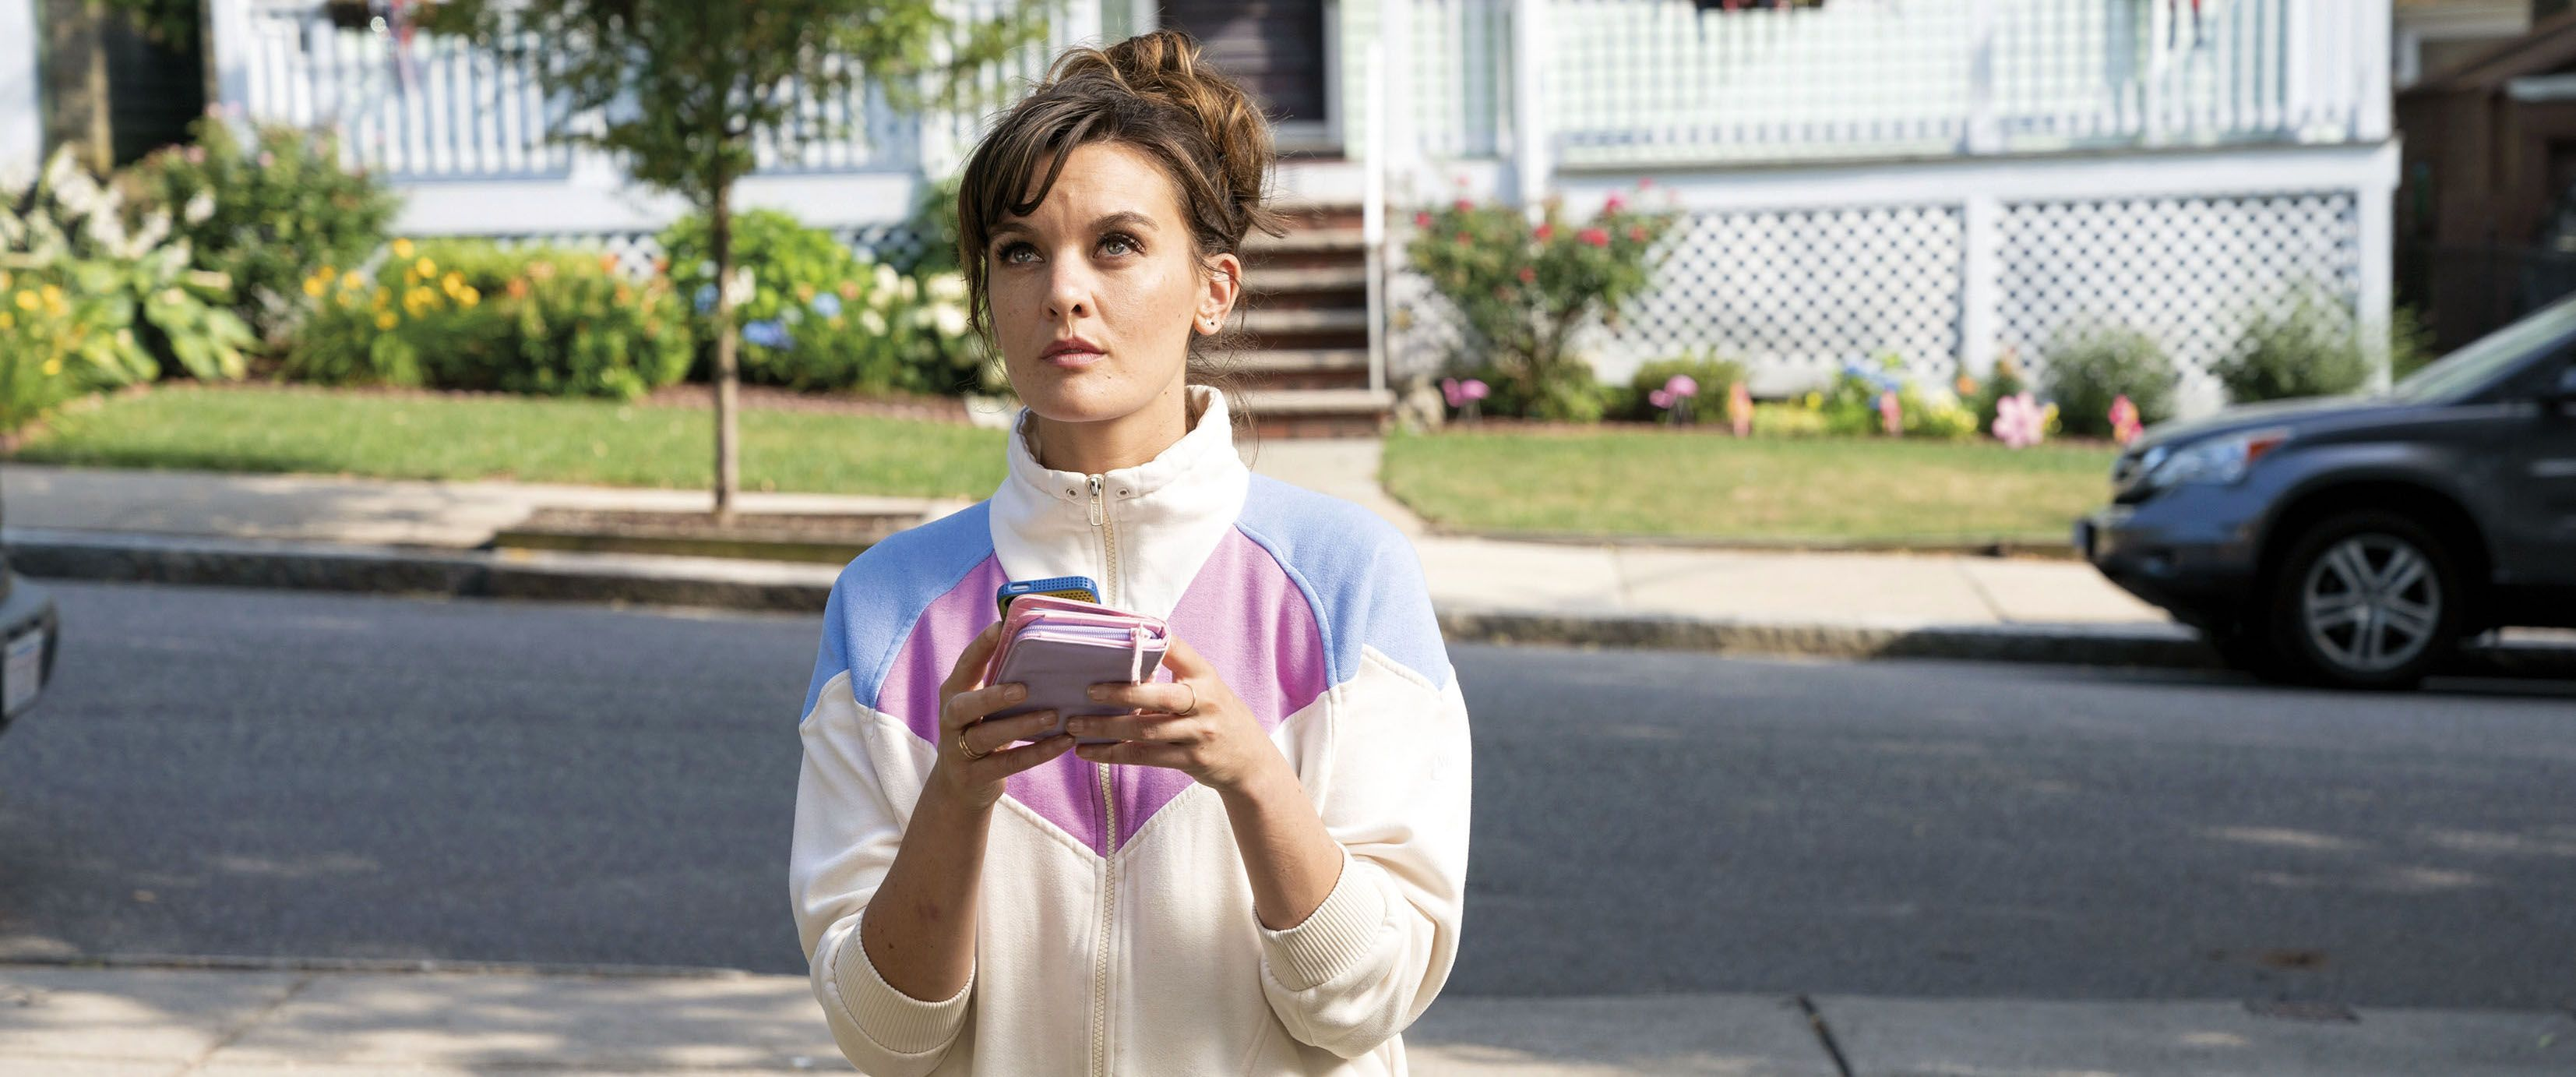 Pourquoi on adore SMILF, la série de Frankie Shaw ?